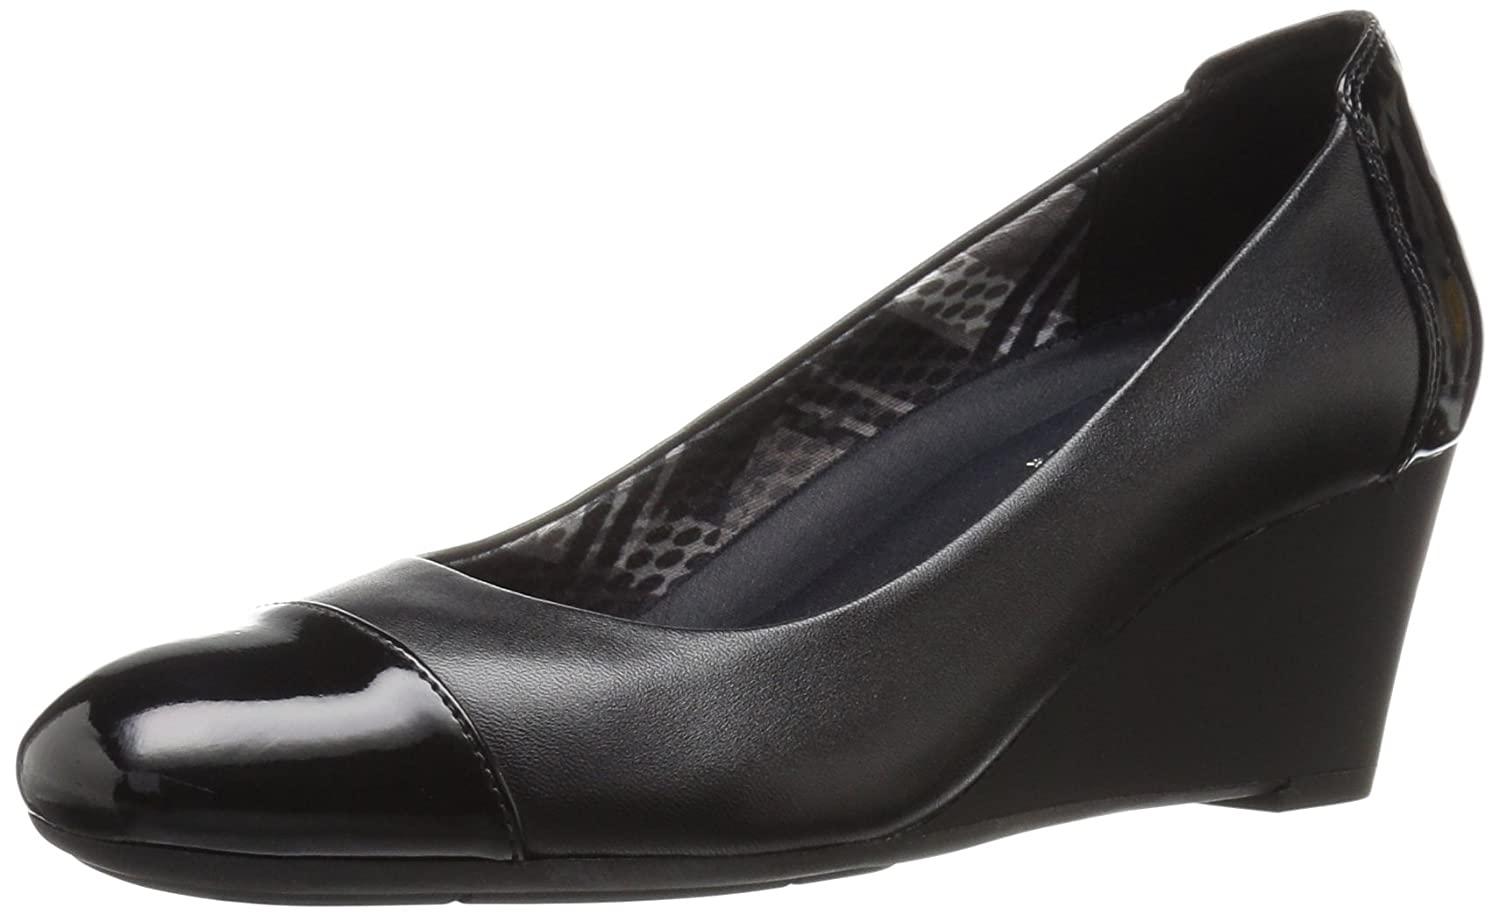 Naturalizer Women's Necile Wedge Pump B019XHTMOU 10 B(M) US|Black